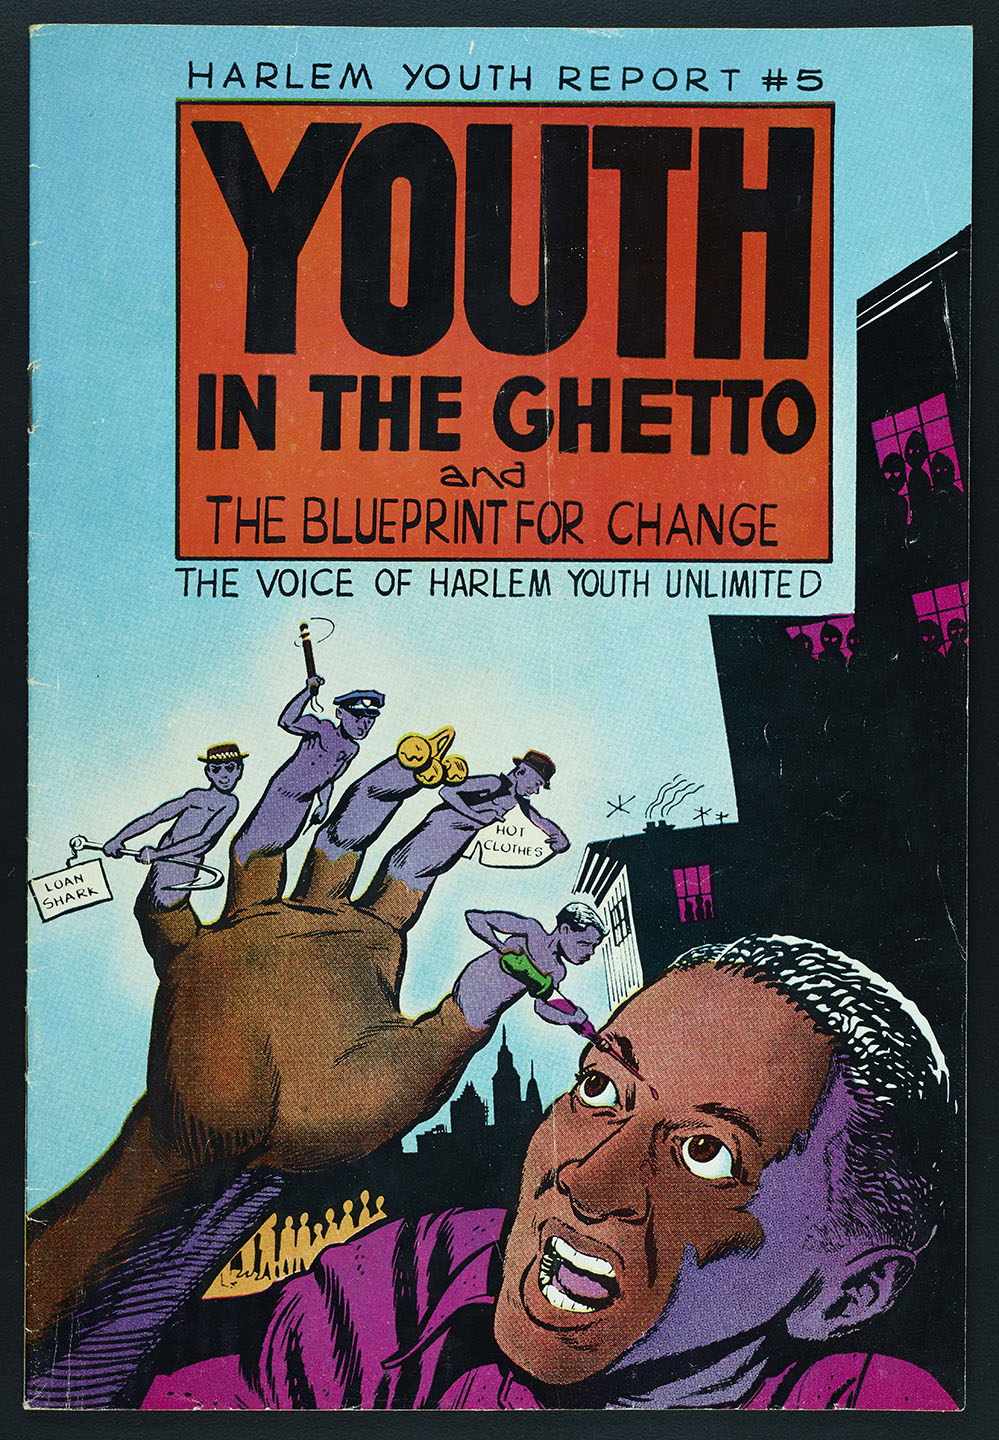 Harlem Youth Report , a pamphlet from HARYOU in comic book form. NYPD Intelligence Division Records, NYC Municipal Archives.